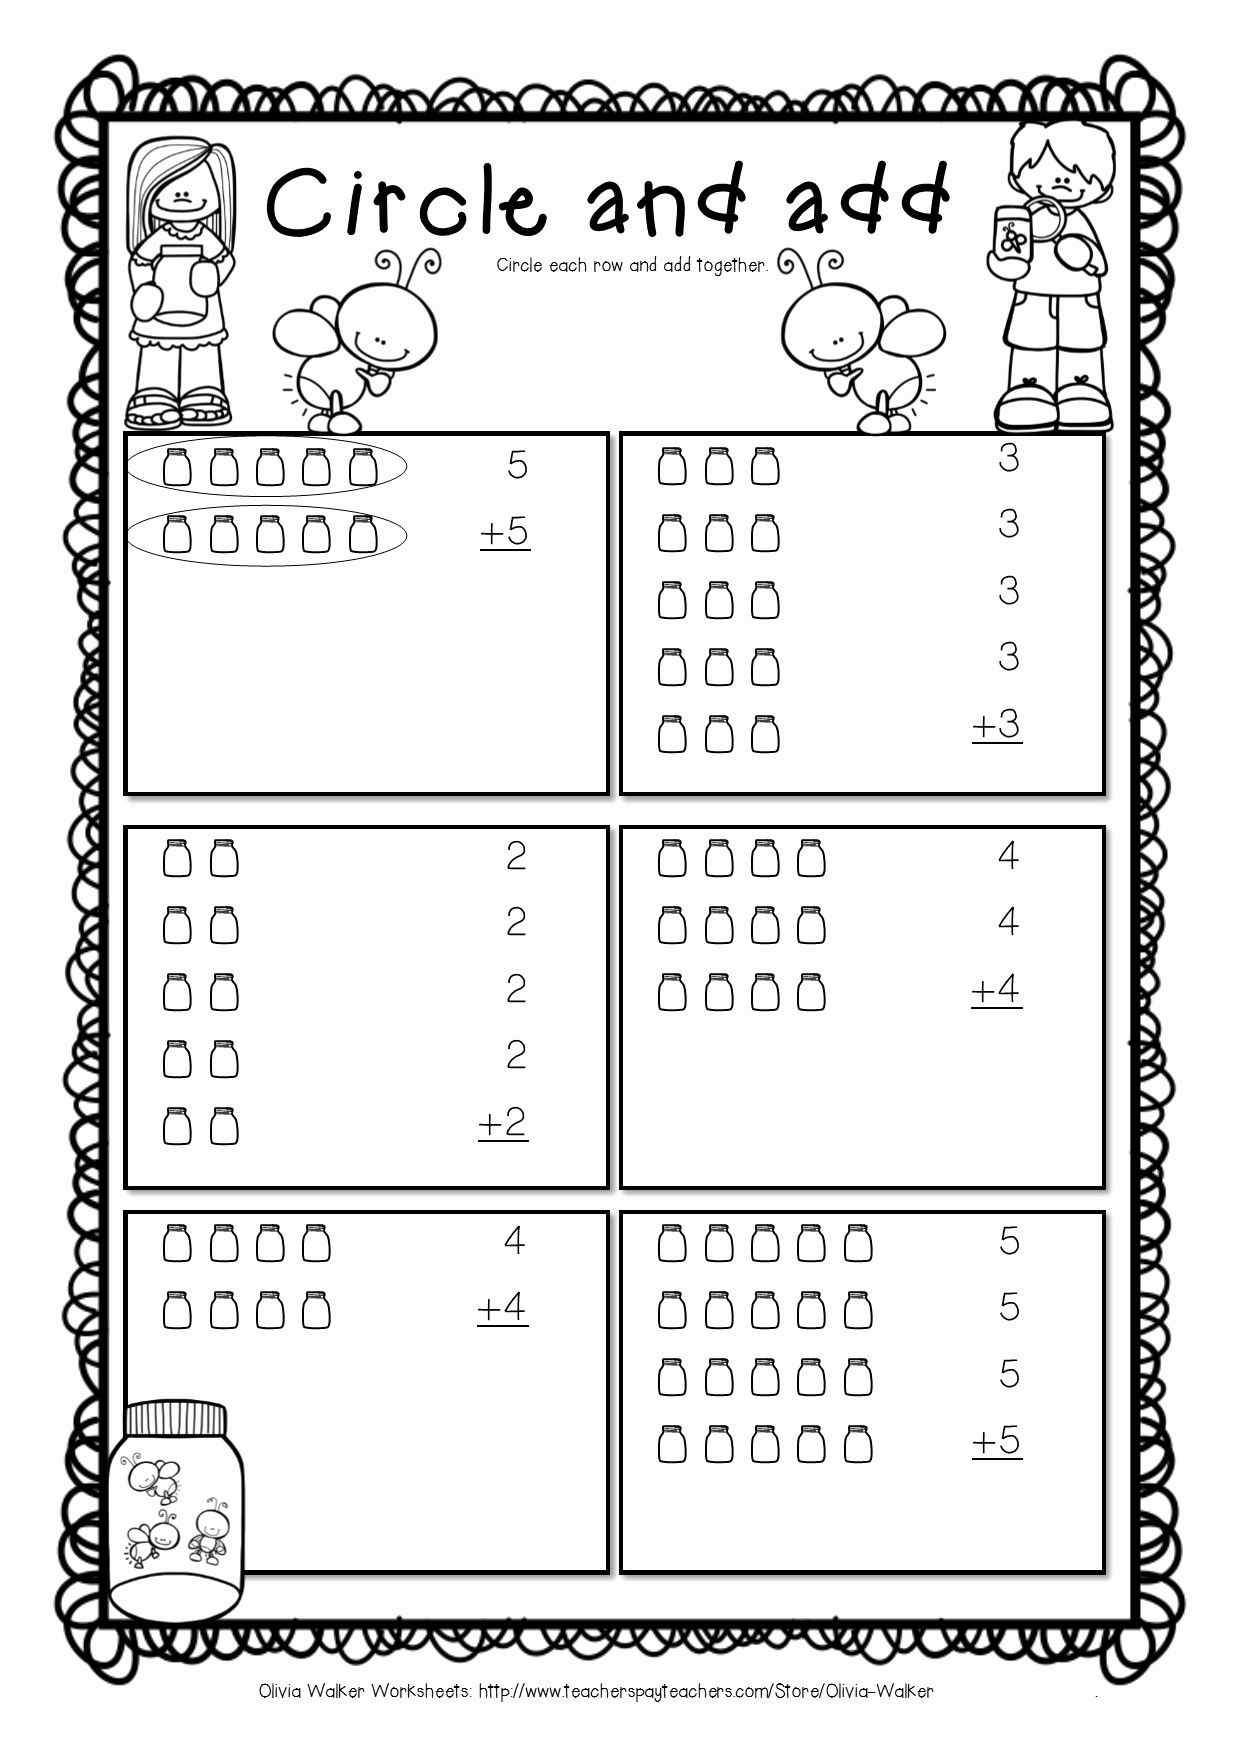 Array Worksheet 2nd Grade Lovely Arrays Worksheets Grade Two Math Standard First Array Worksheets Free Printable Math Worksheets Math Worksheets